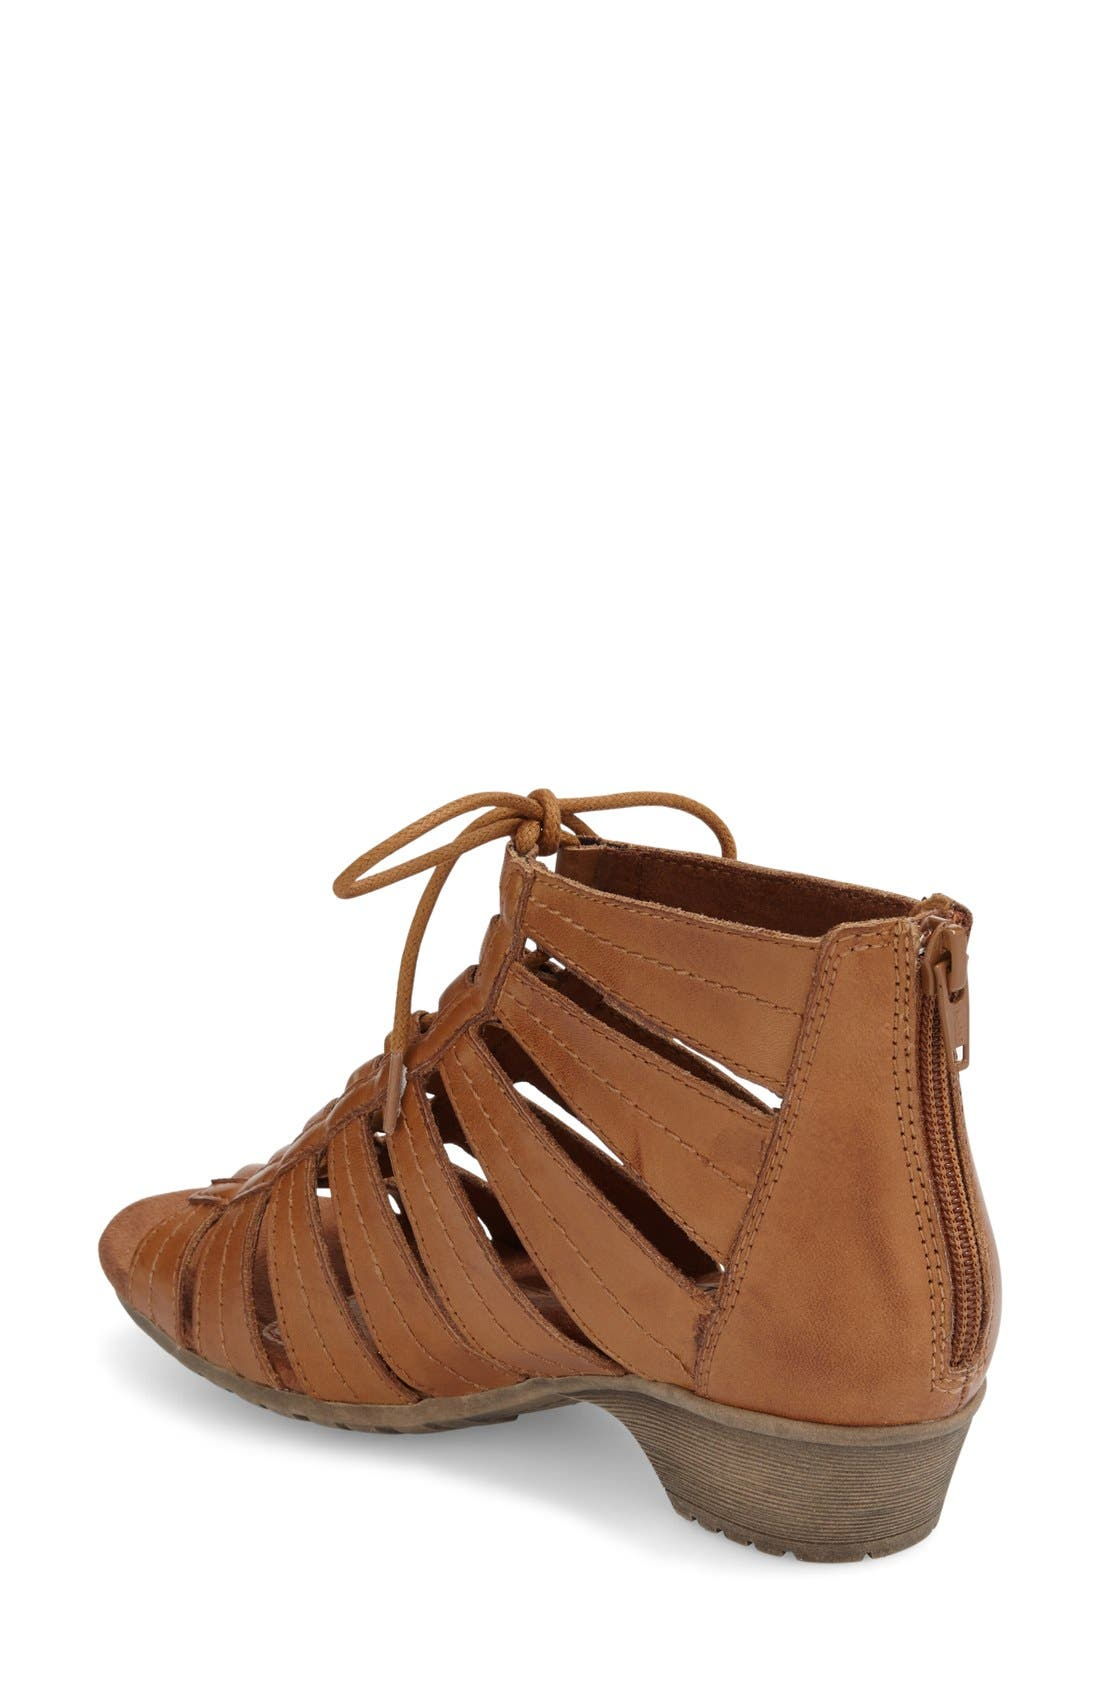 'Gabby' Lace-Up Sandal,                             Alternate thumbnail 45, color,